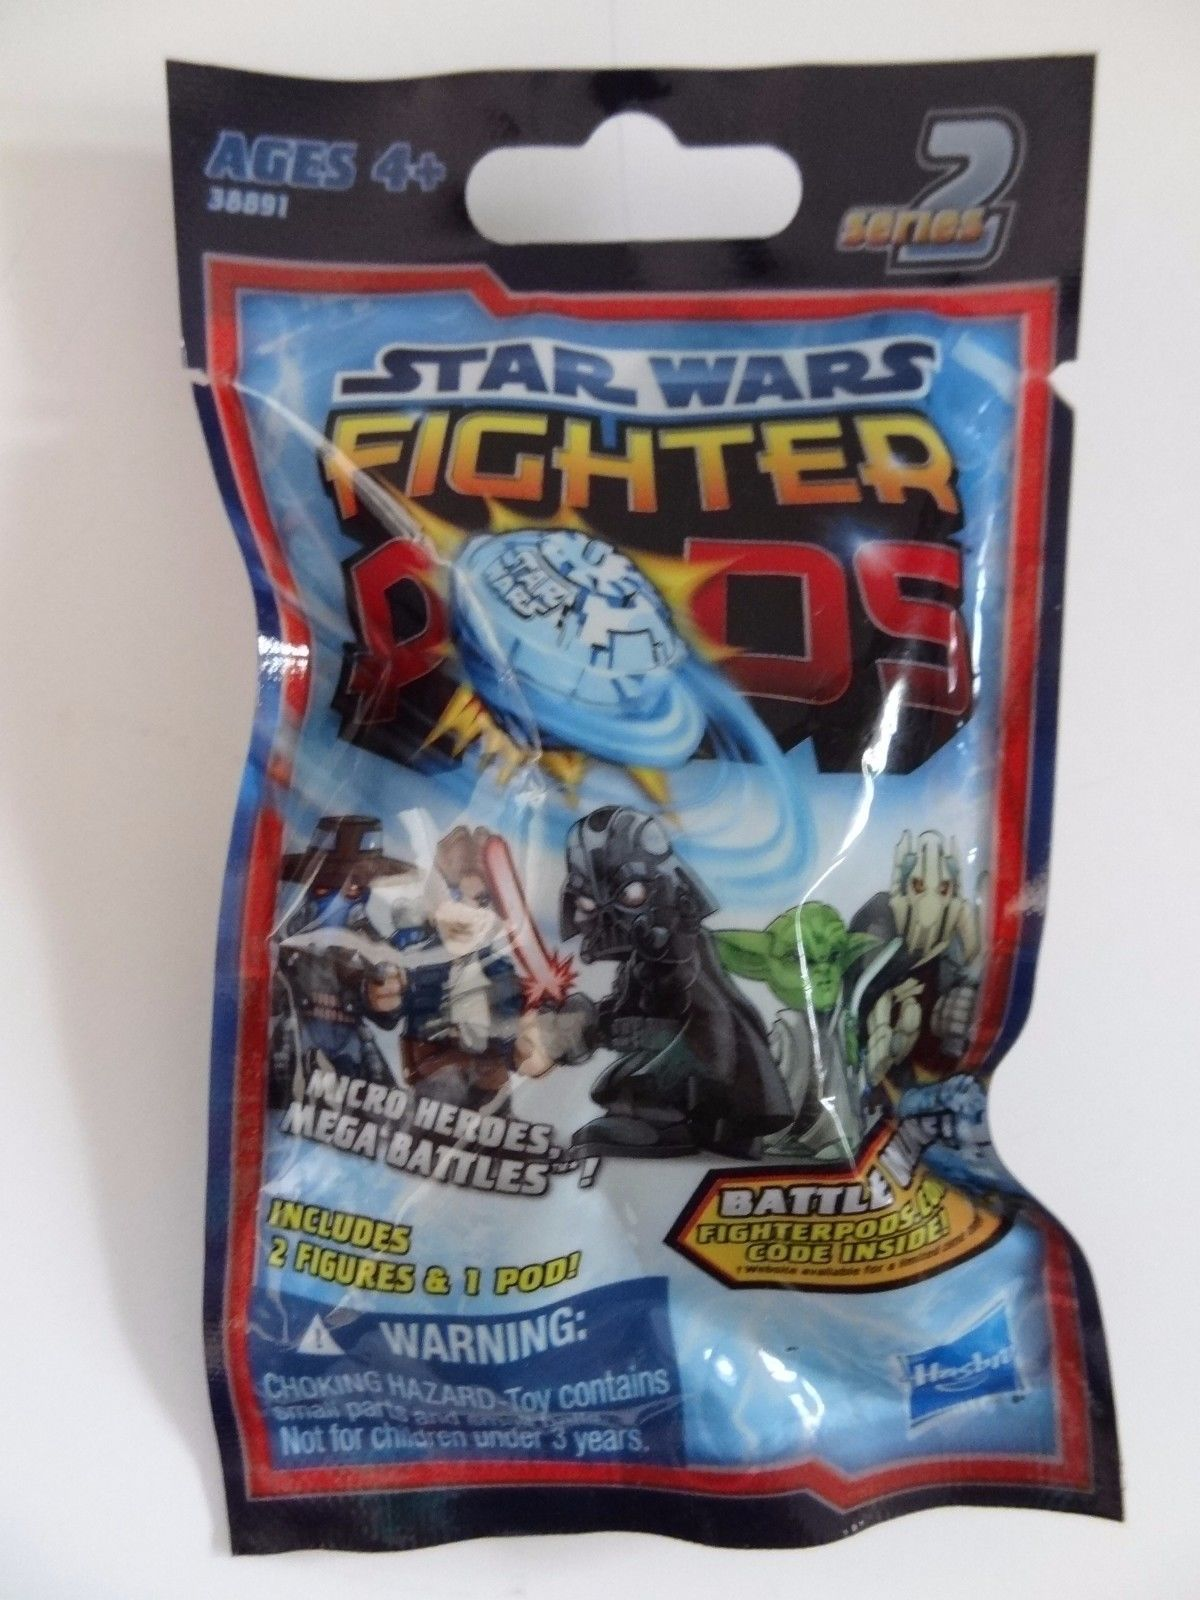 Star wars fighter pods Micro Heroes Series 2 action figures 38891